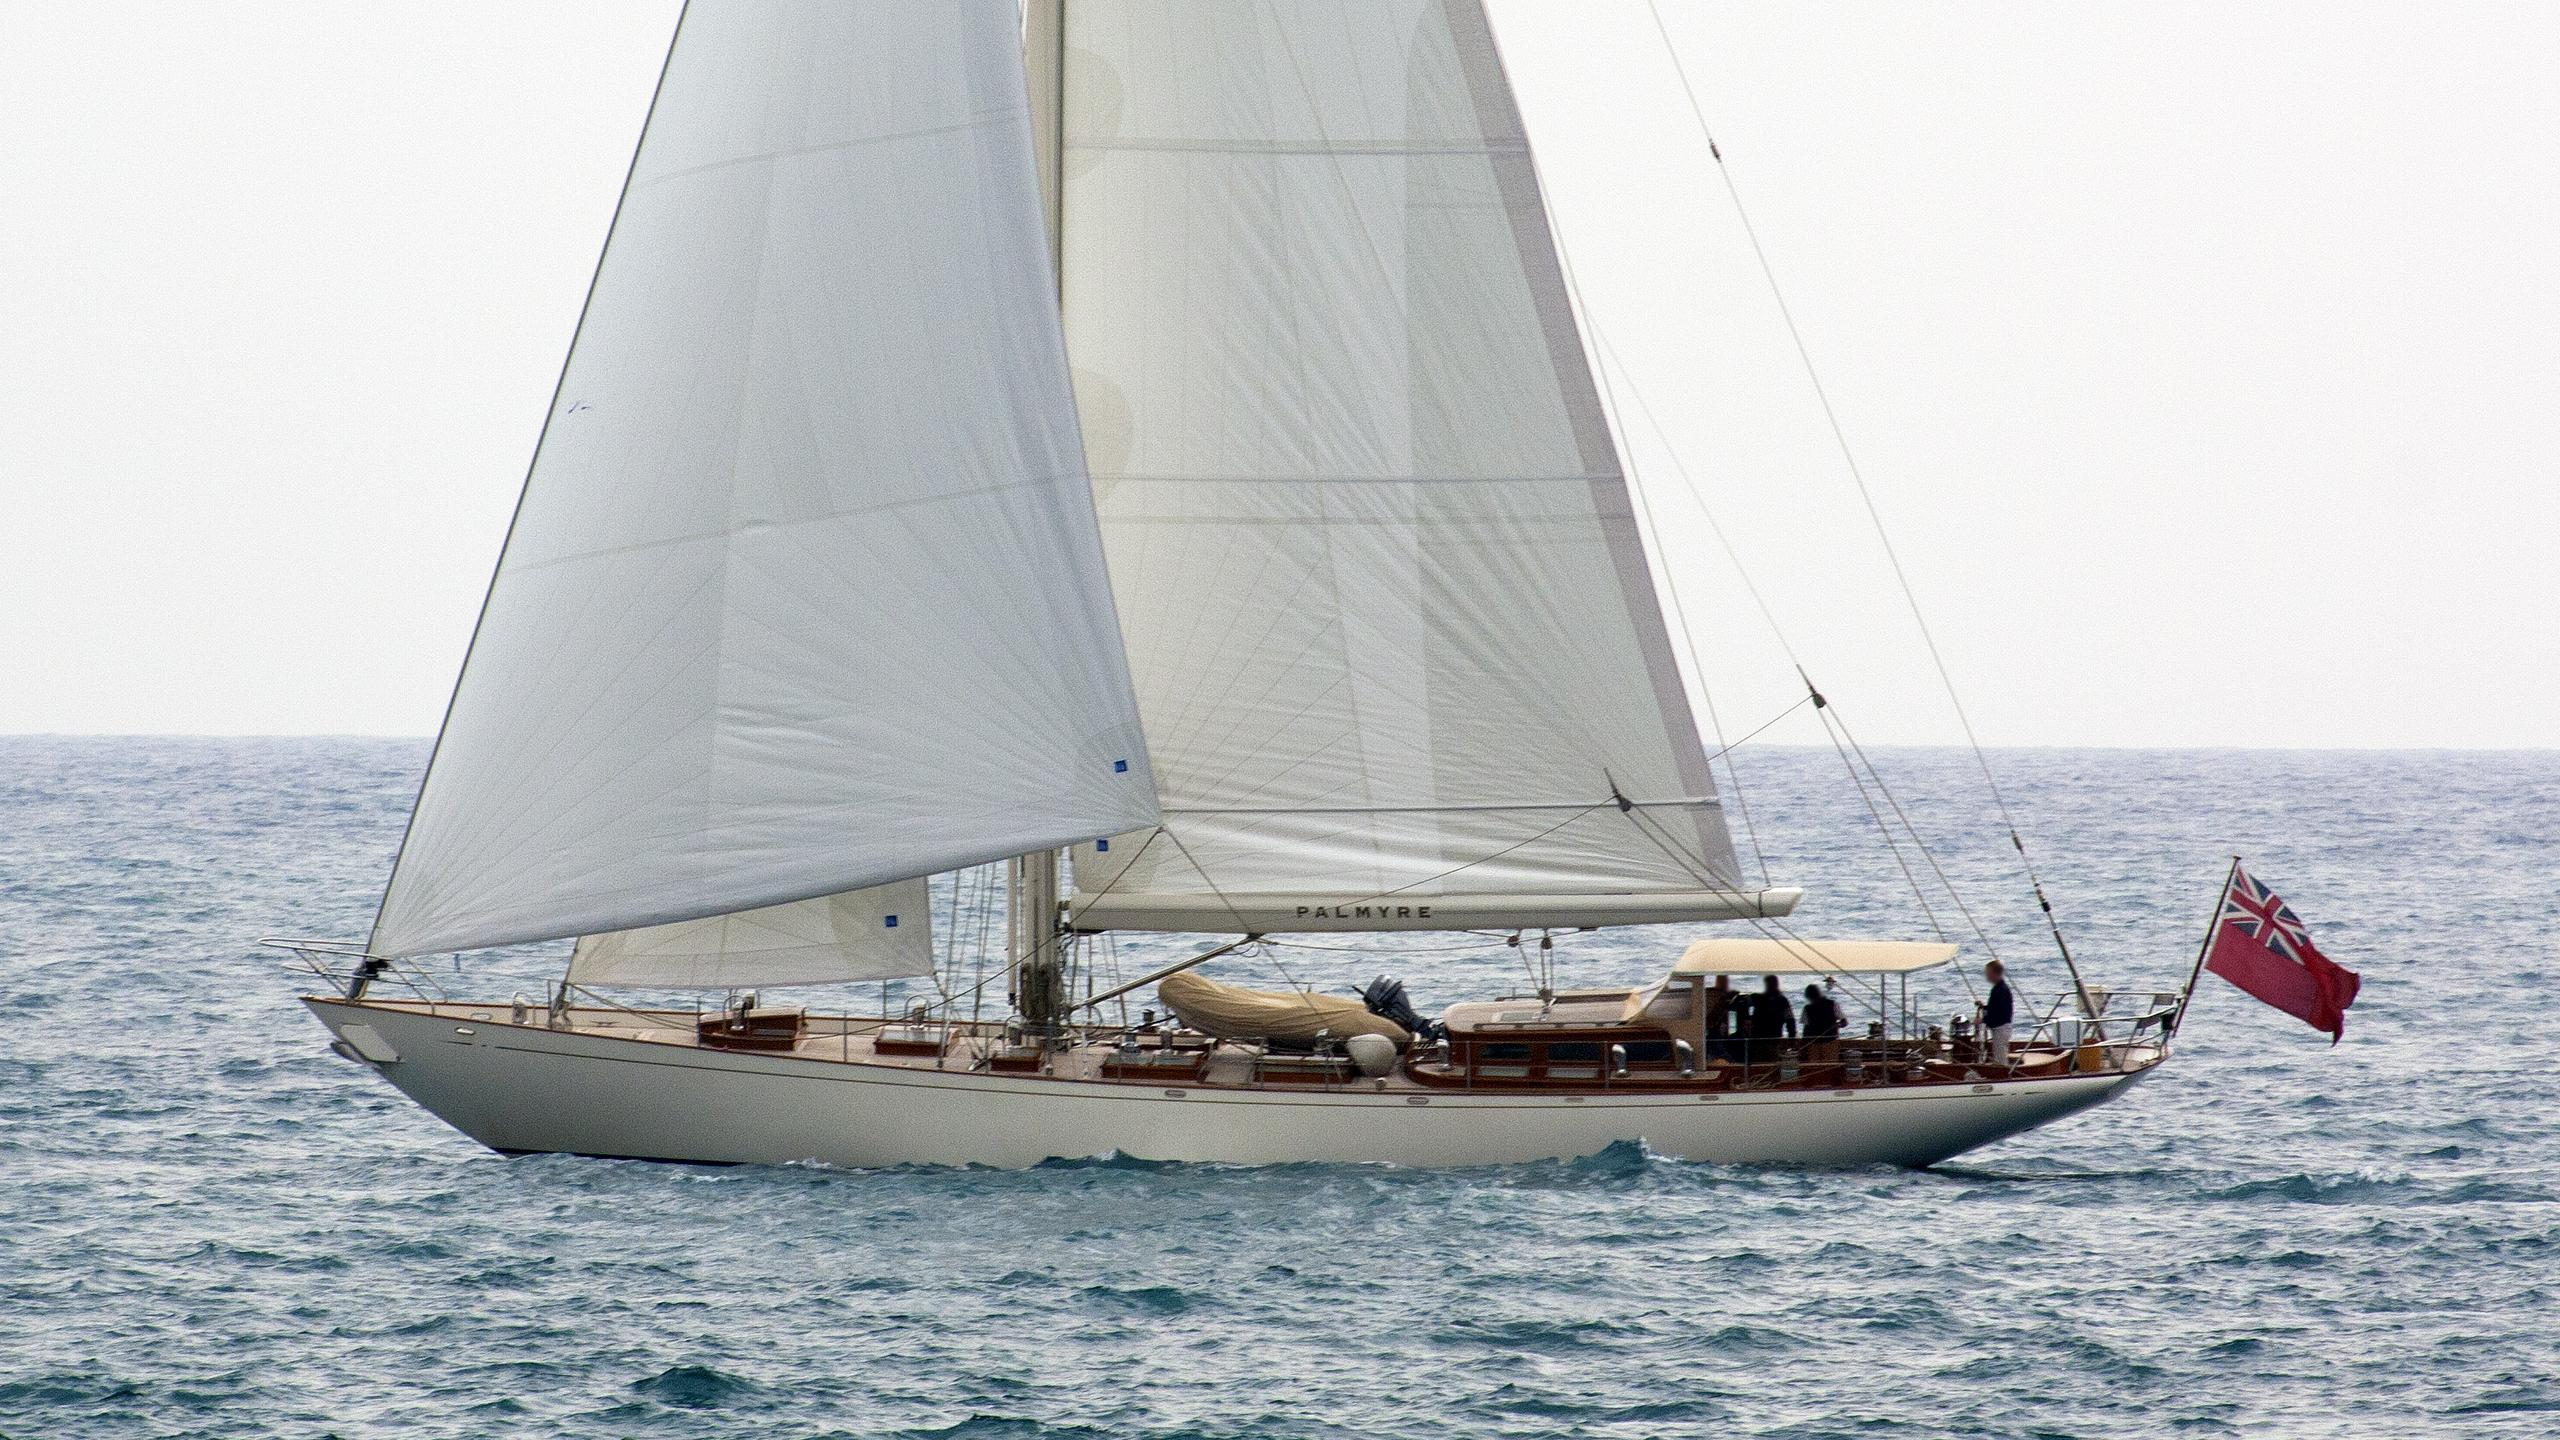 palmyre-sailing-boat-holland-jachtbouw-Truly-Classic-80-2000-25m-sailing